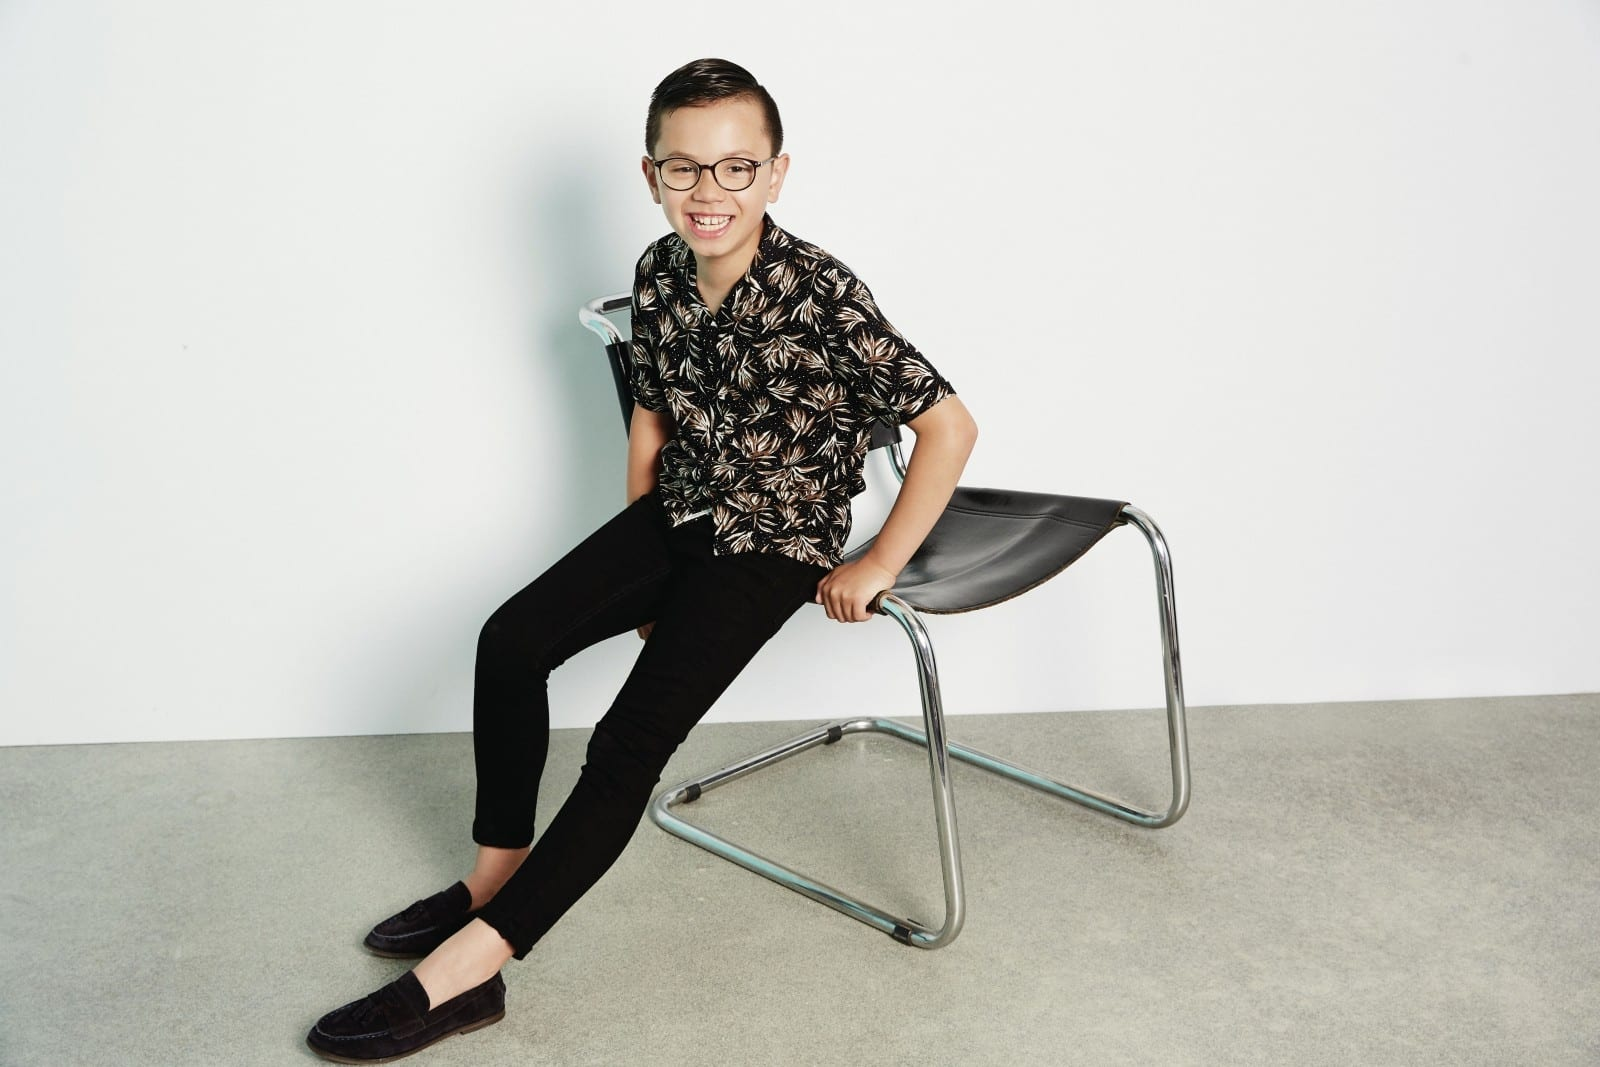 Autistic Boy Banned From School Picture Becomes High Street Model